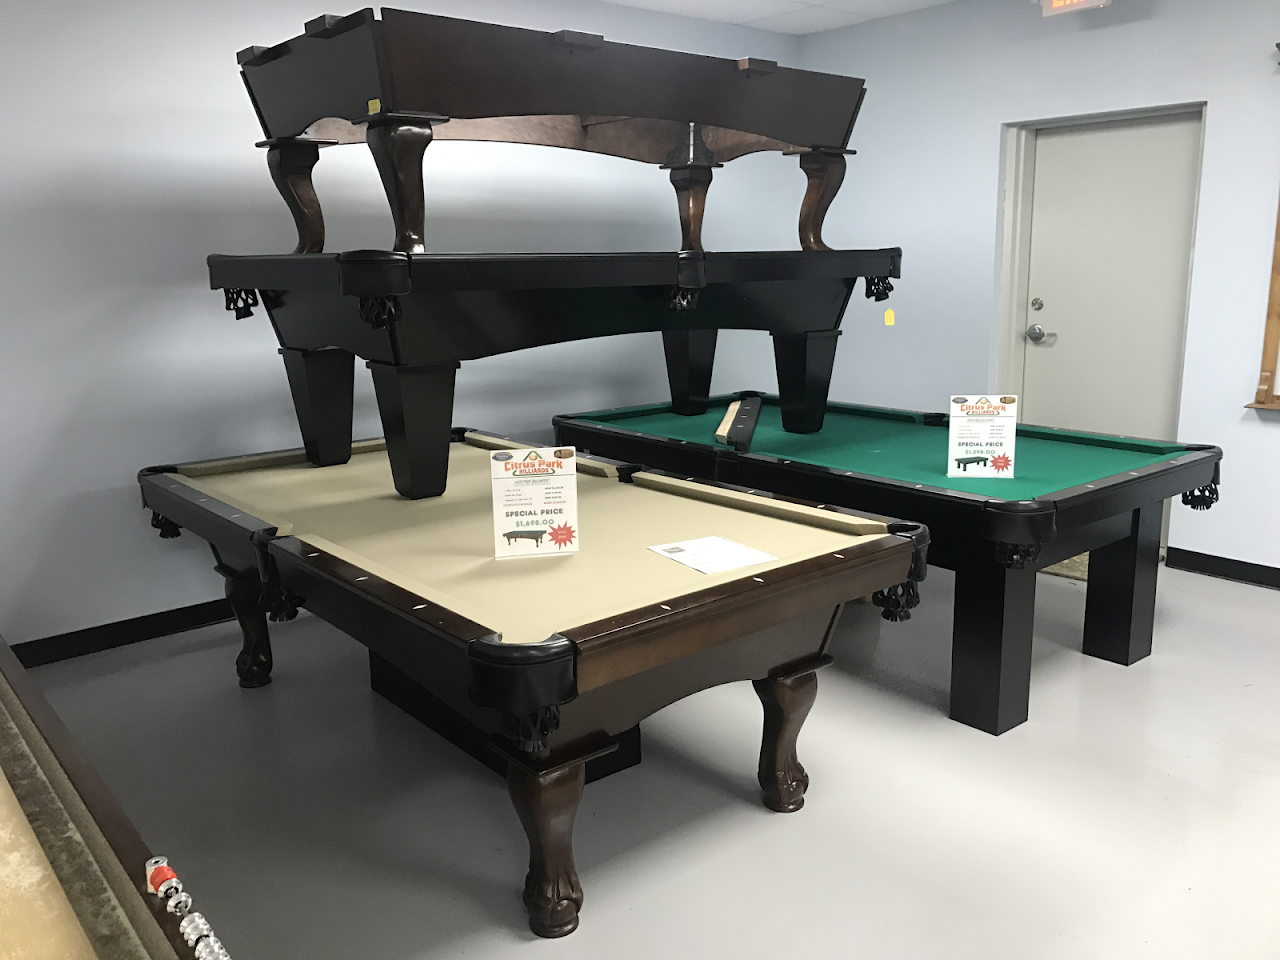 Man Cave Store Tampa : The man cave warehouse tampa pool table store gameroom